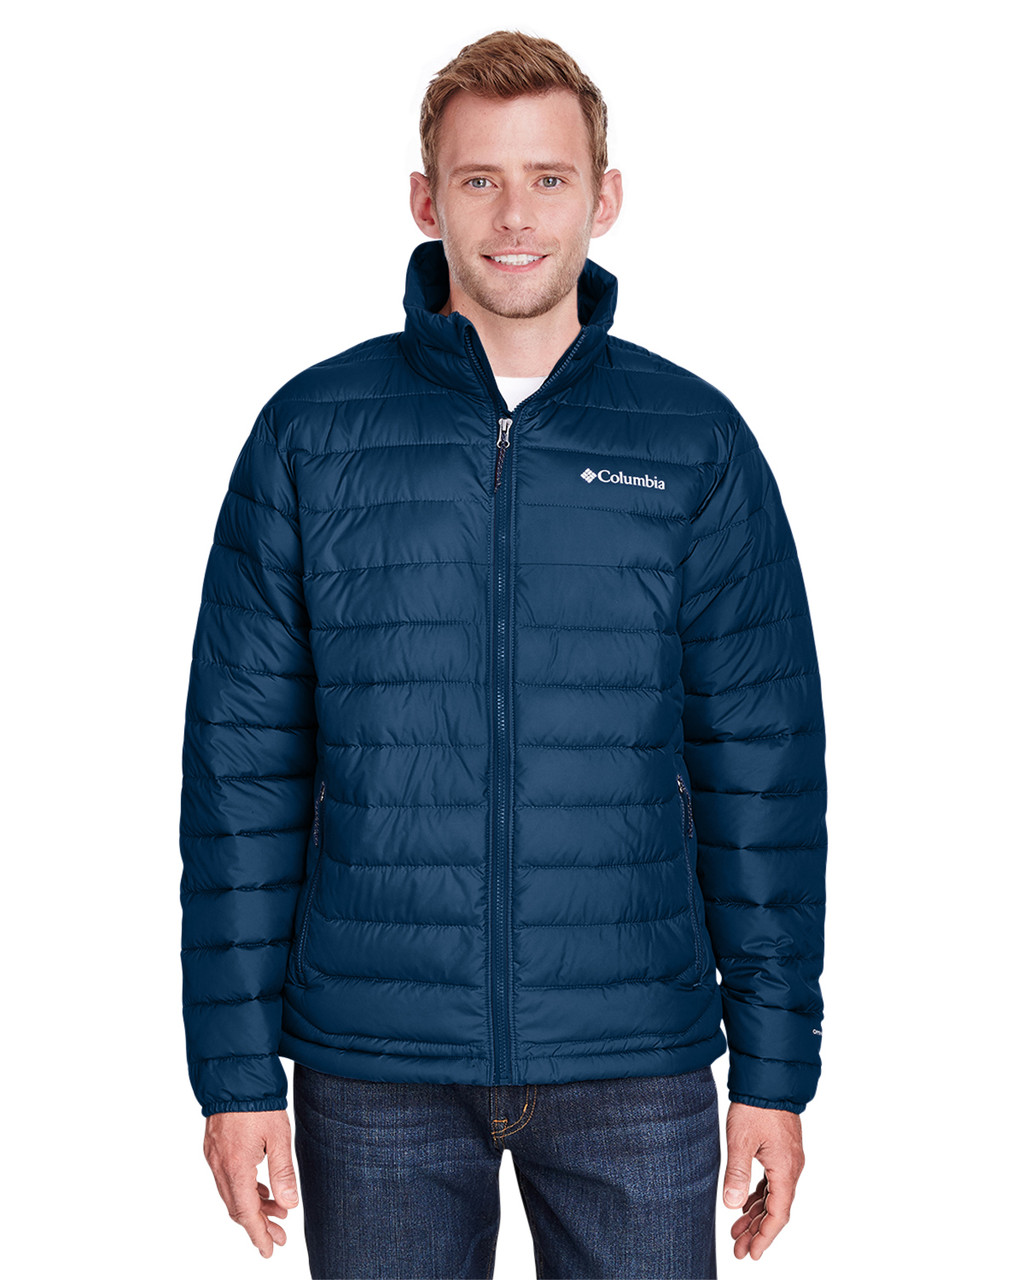 Collegiate Navy - 1698001 Columbia Men's Powder Lite™ Jacket | Blankclothing.ca